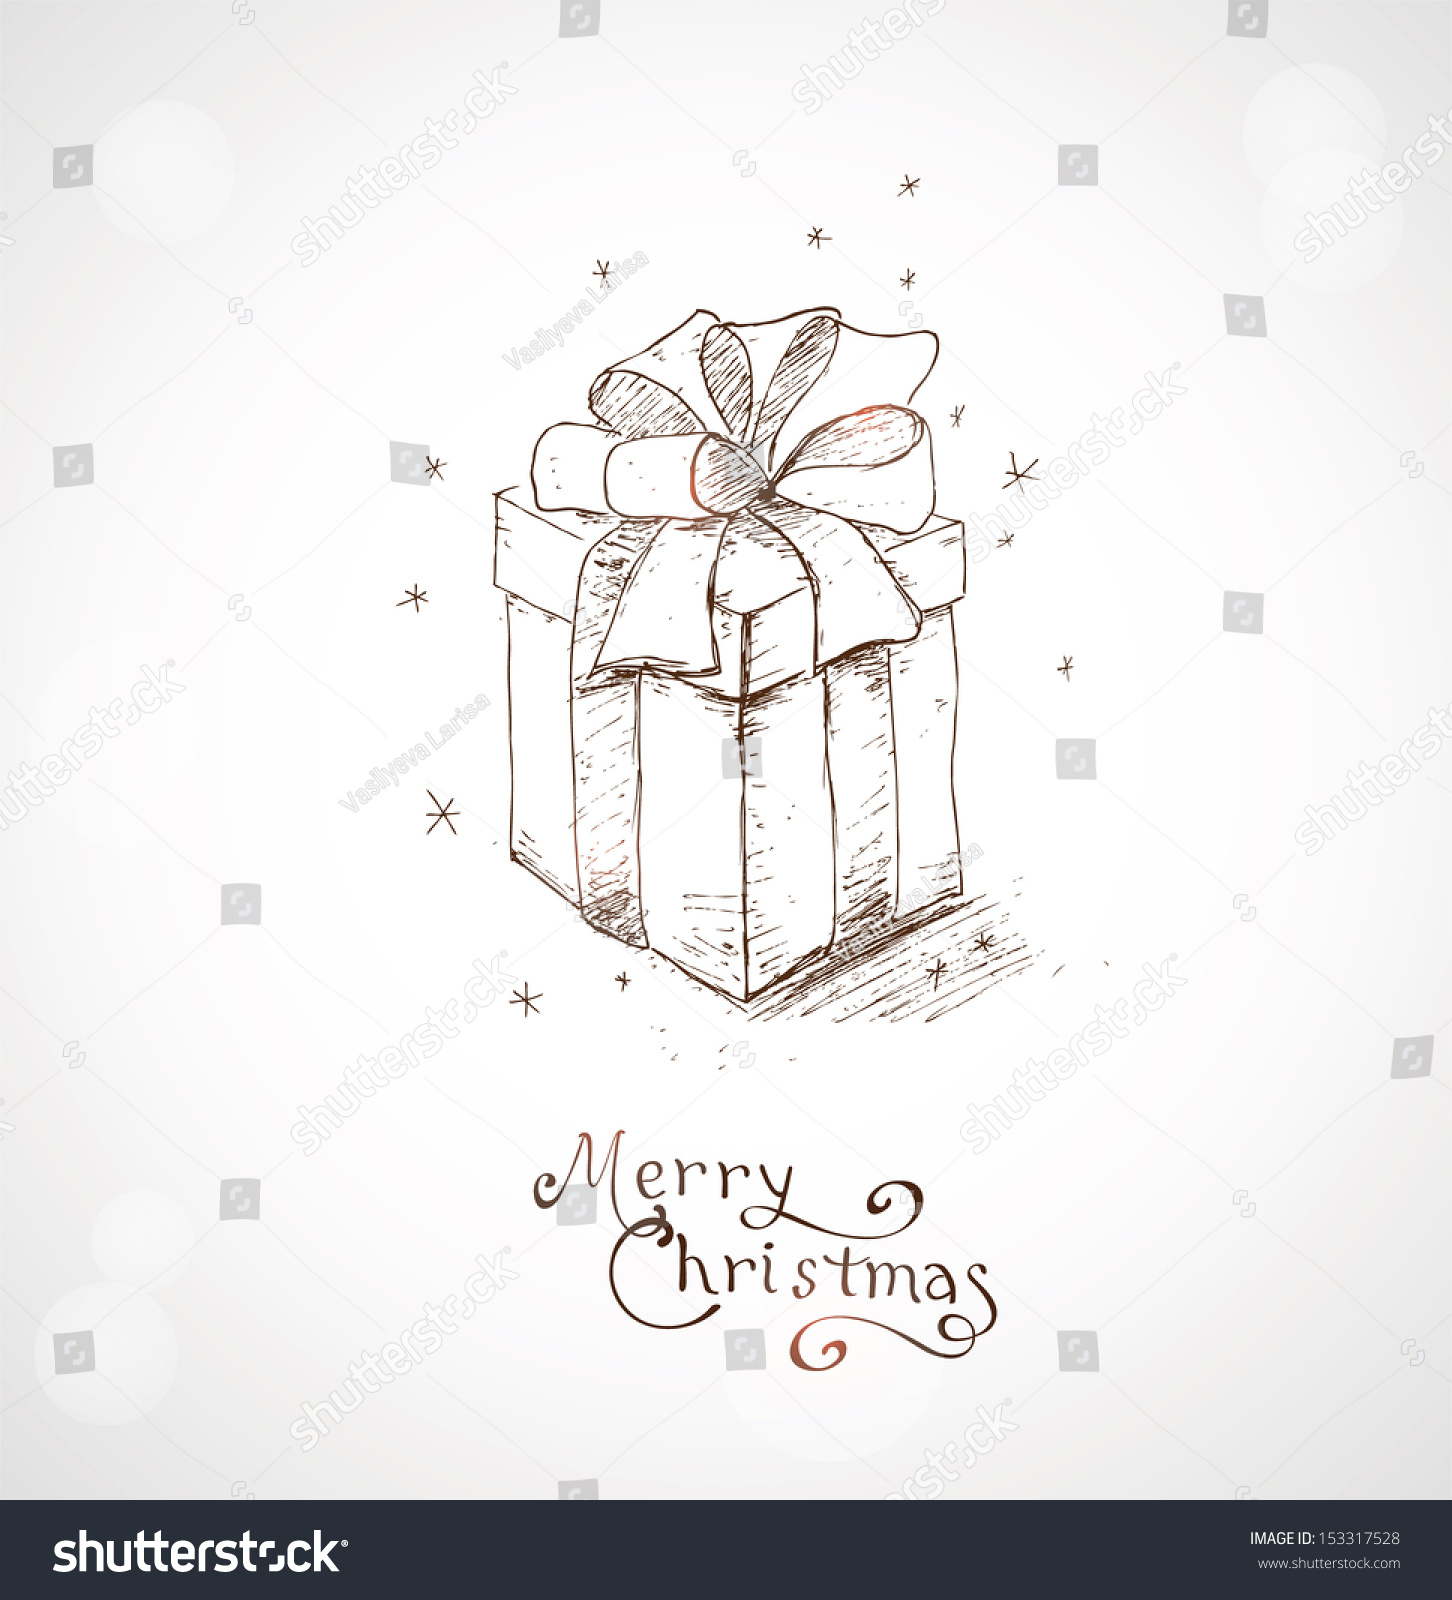 Christmas Greeting Card Hand Draw Background Stock Vector (Royalty ...